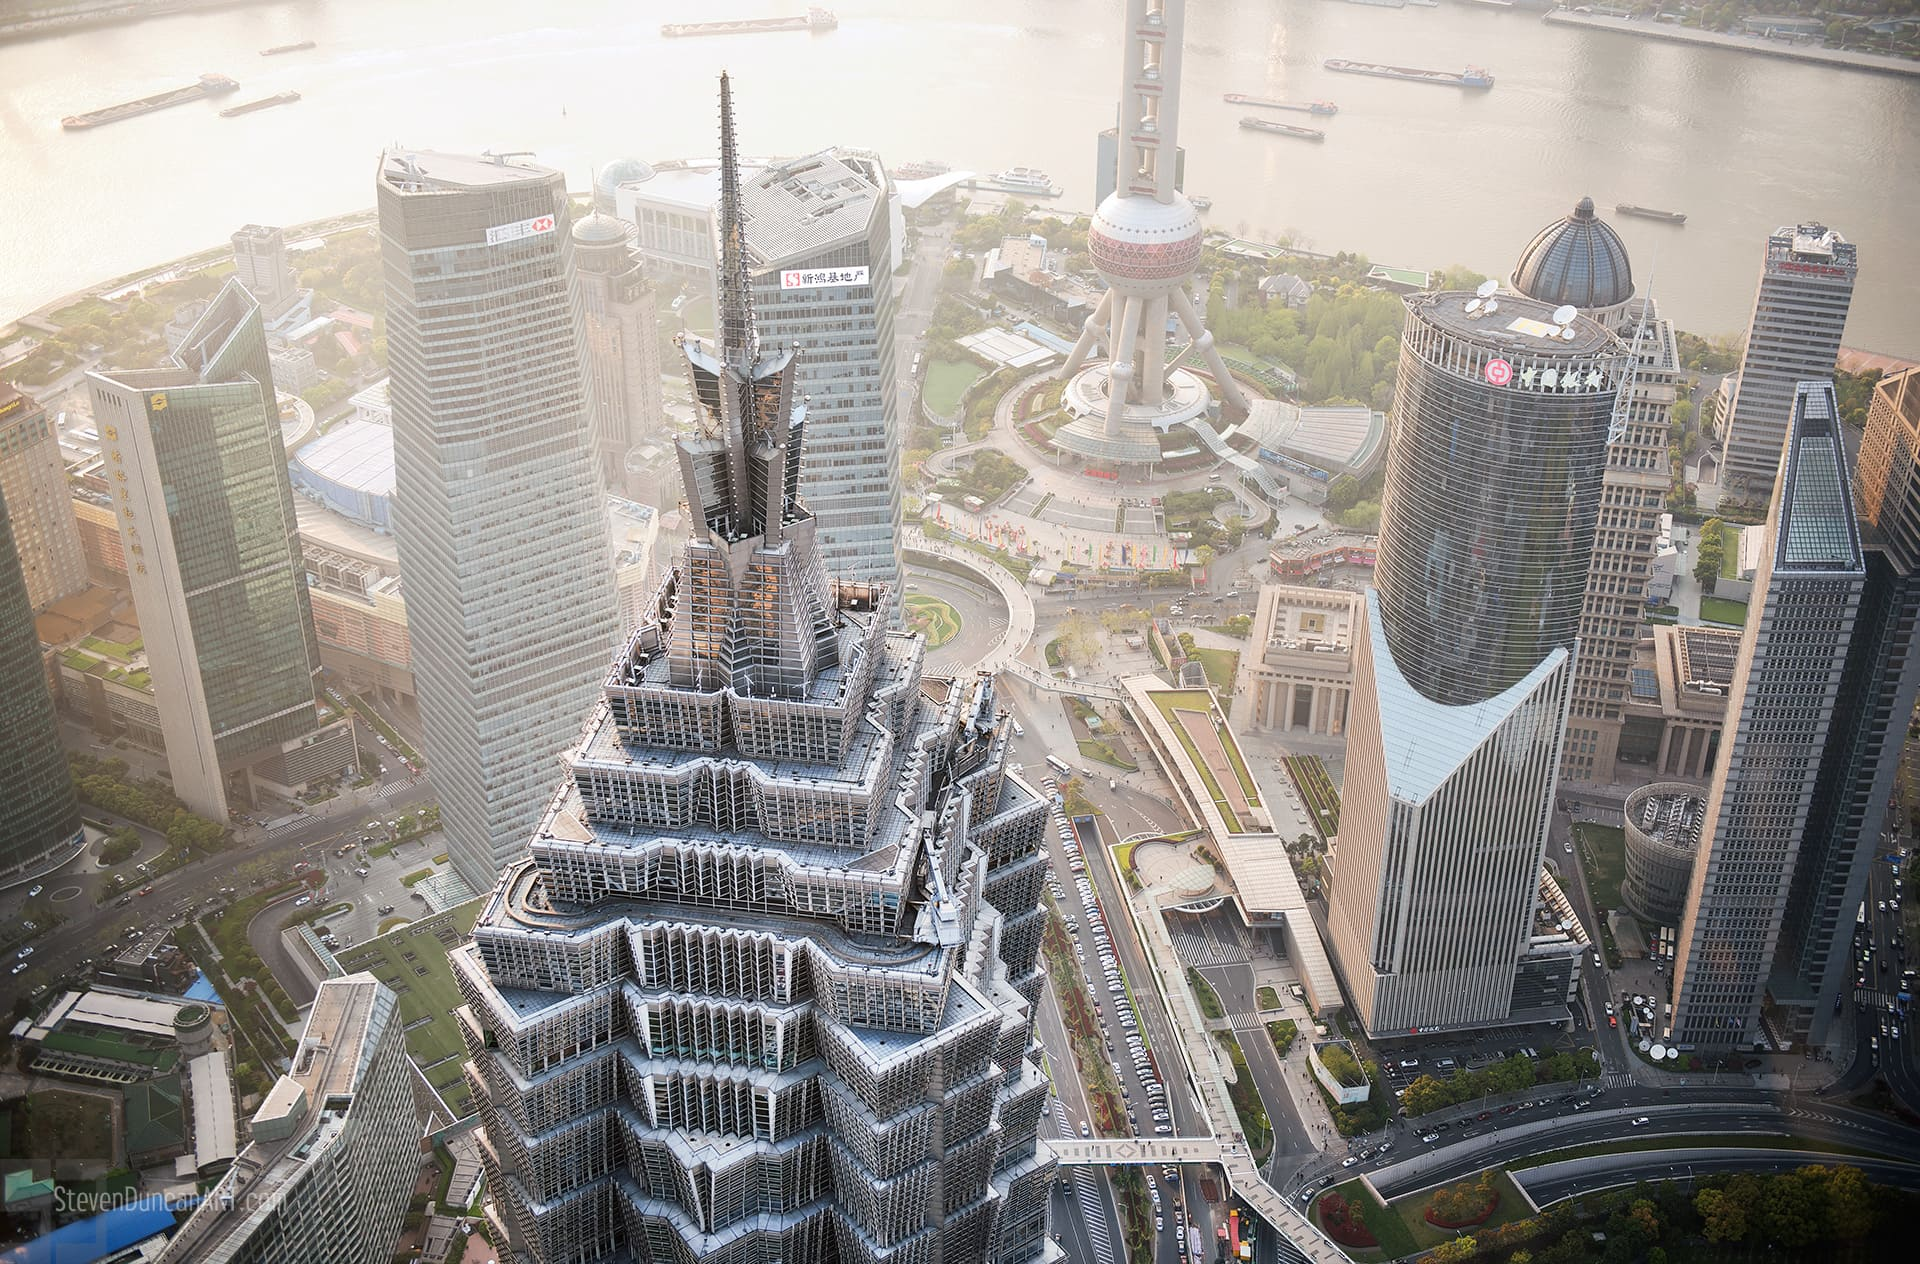 Another view of Shanghai above